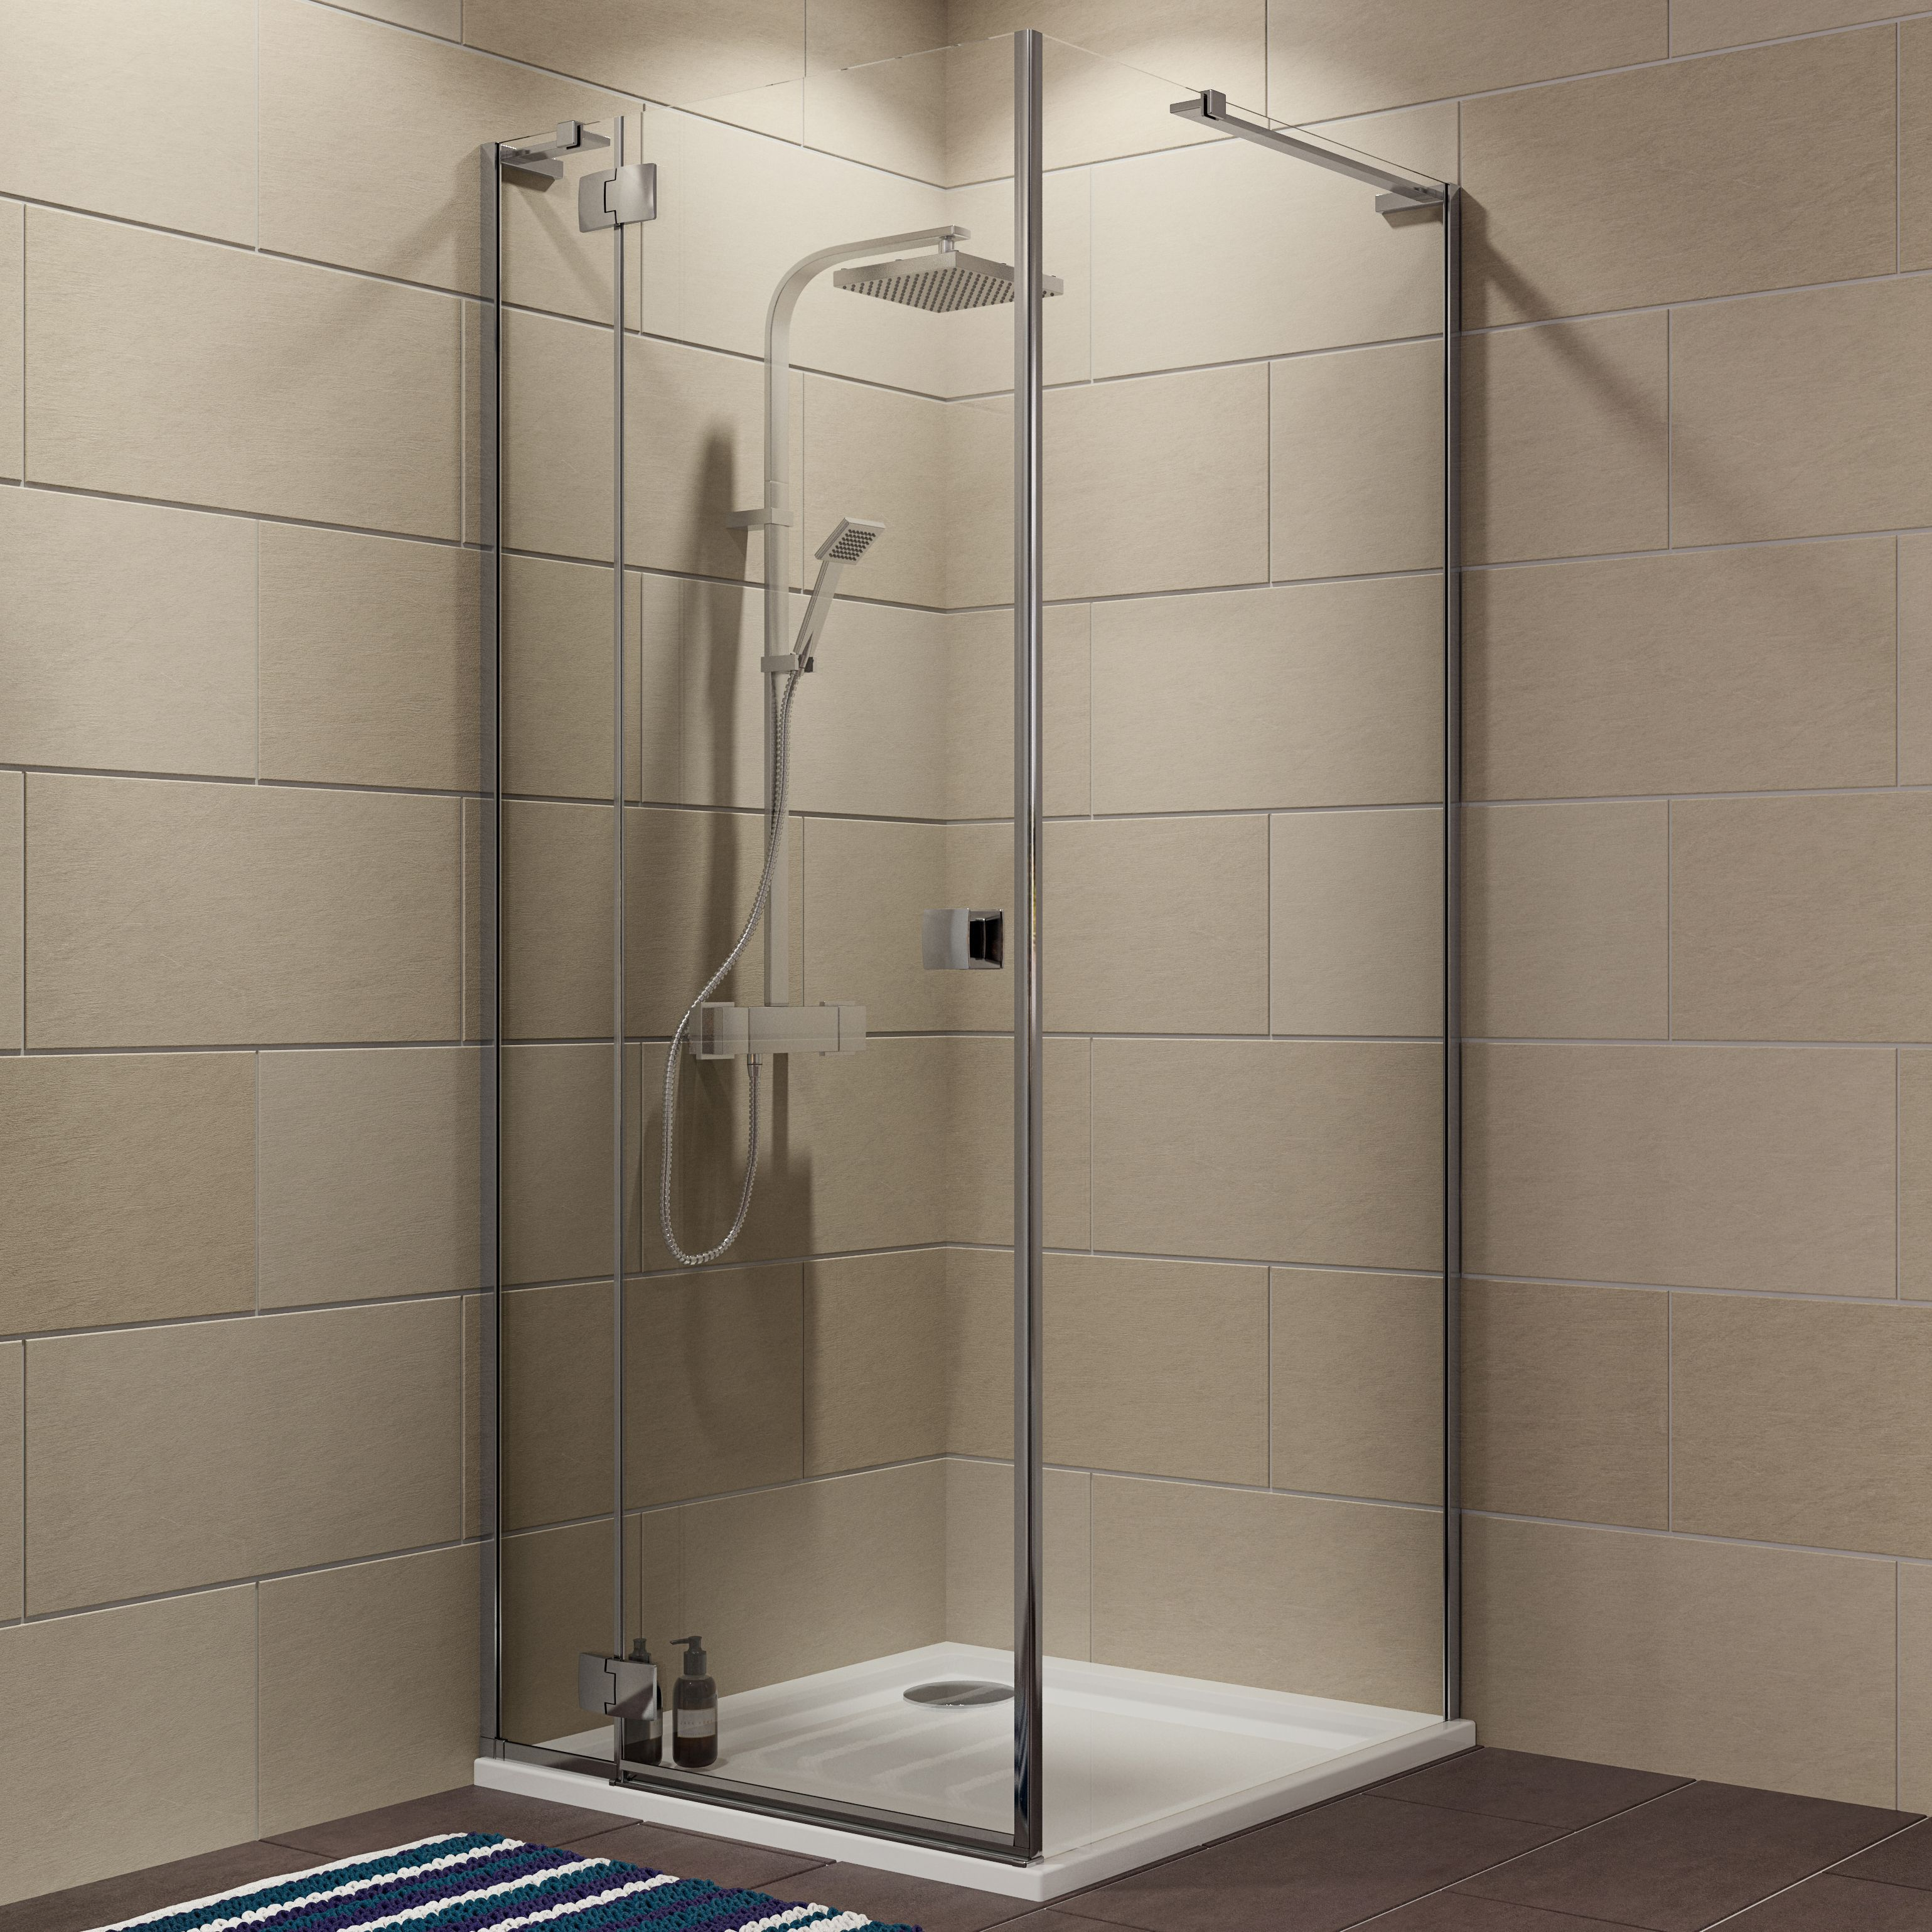 Cooke & Lewis Luxuriant Square Shower Enclosure With Hinged Door (w)800mm (d)800mm